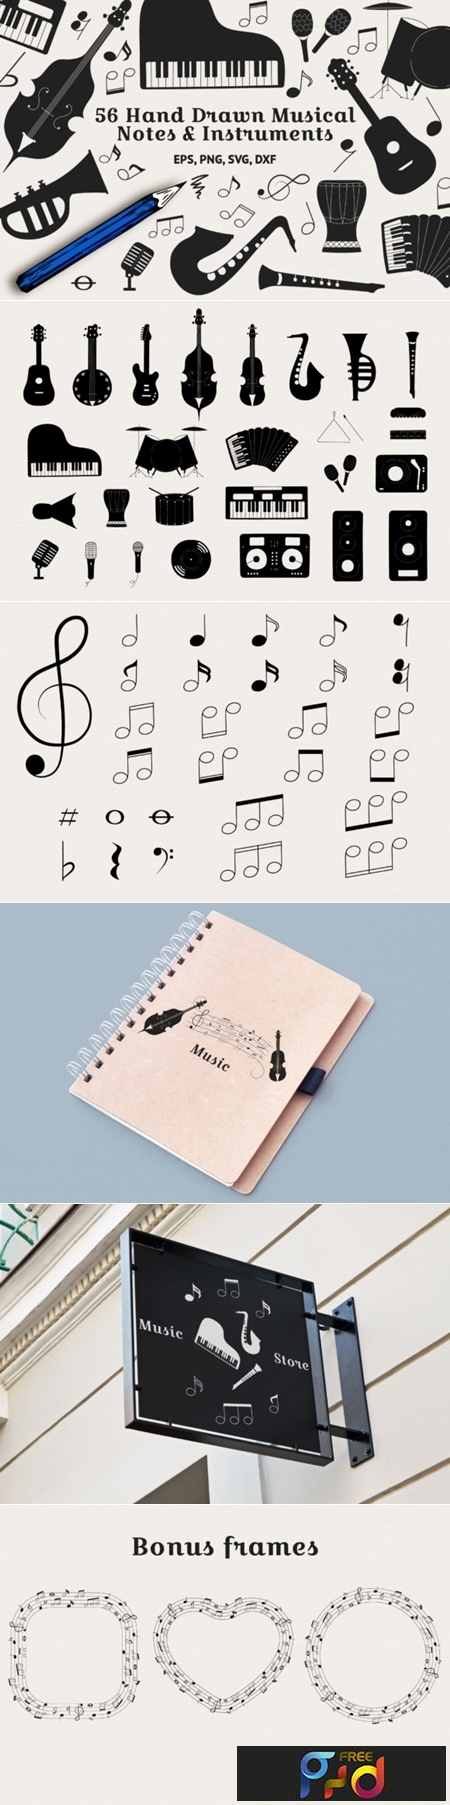 56 Hand Drawn Musical Instruments & Music Notes 1